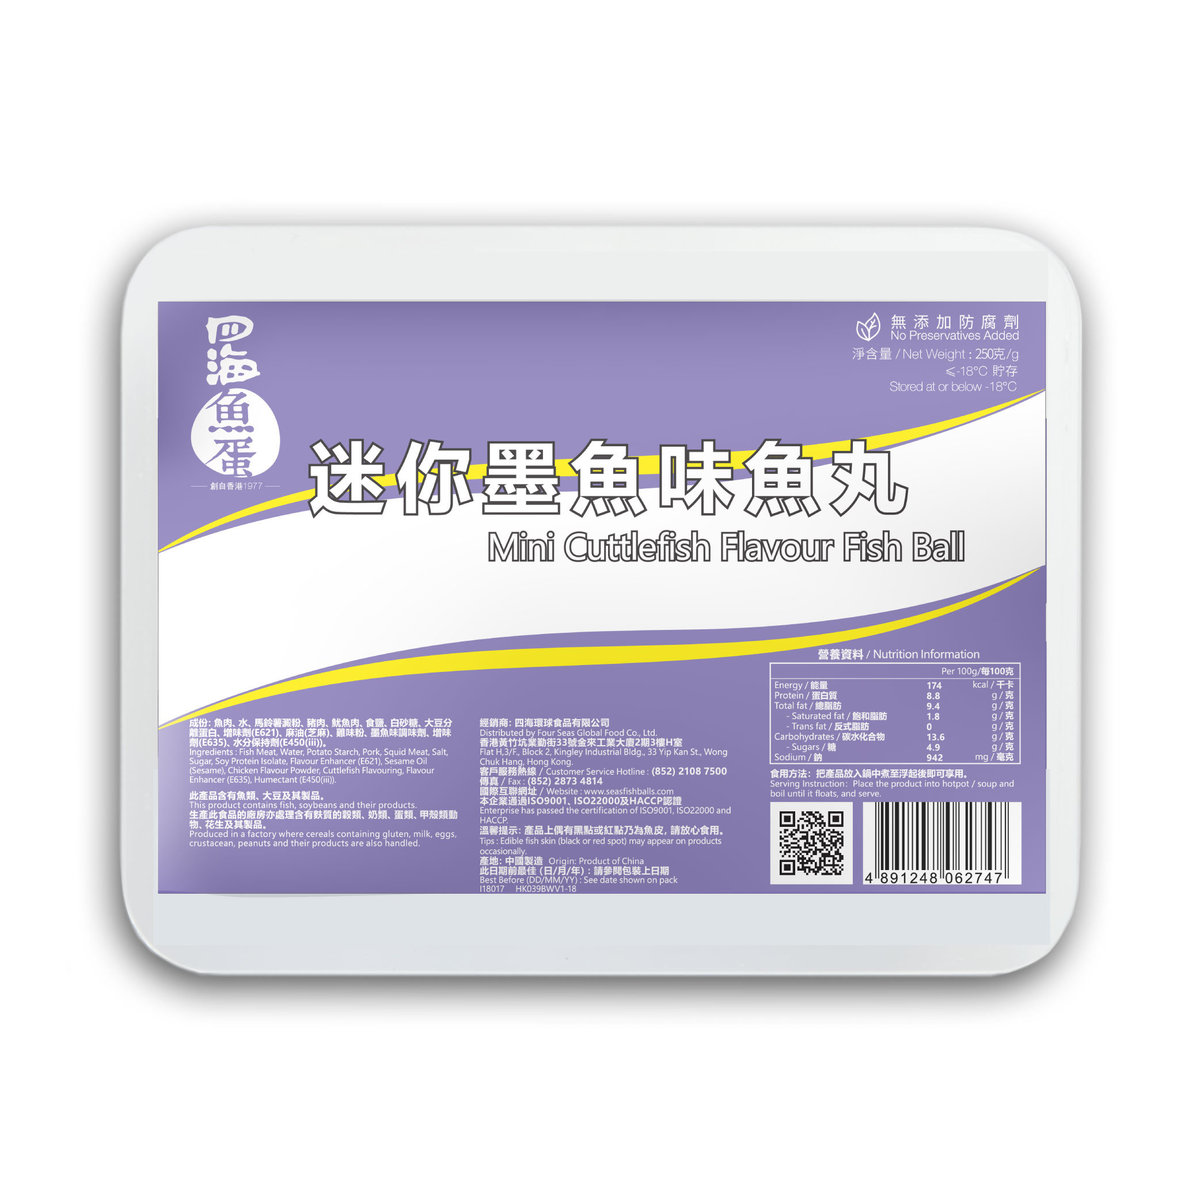 Mini Cuttlefish Flavour Fish Ball 250g (FROZEN)